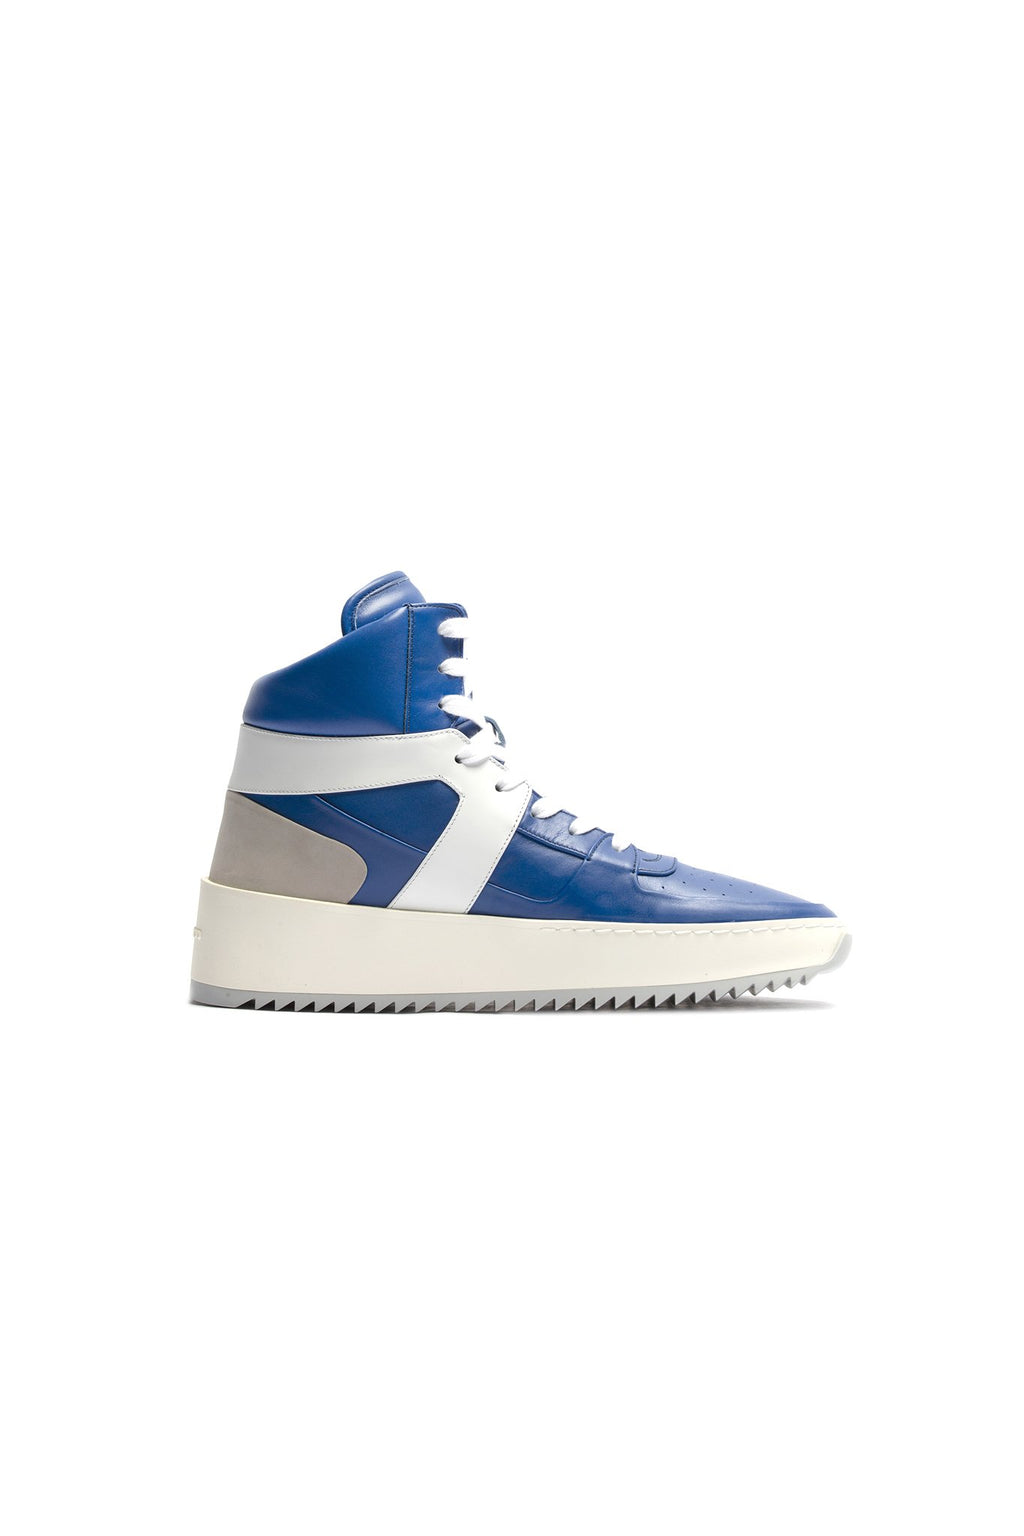 Kentucky Blue / White Basketball Sneaker